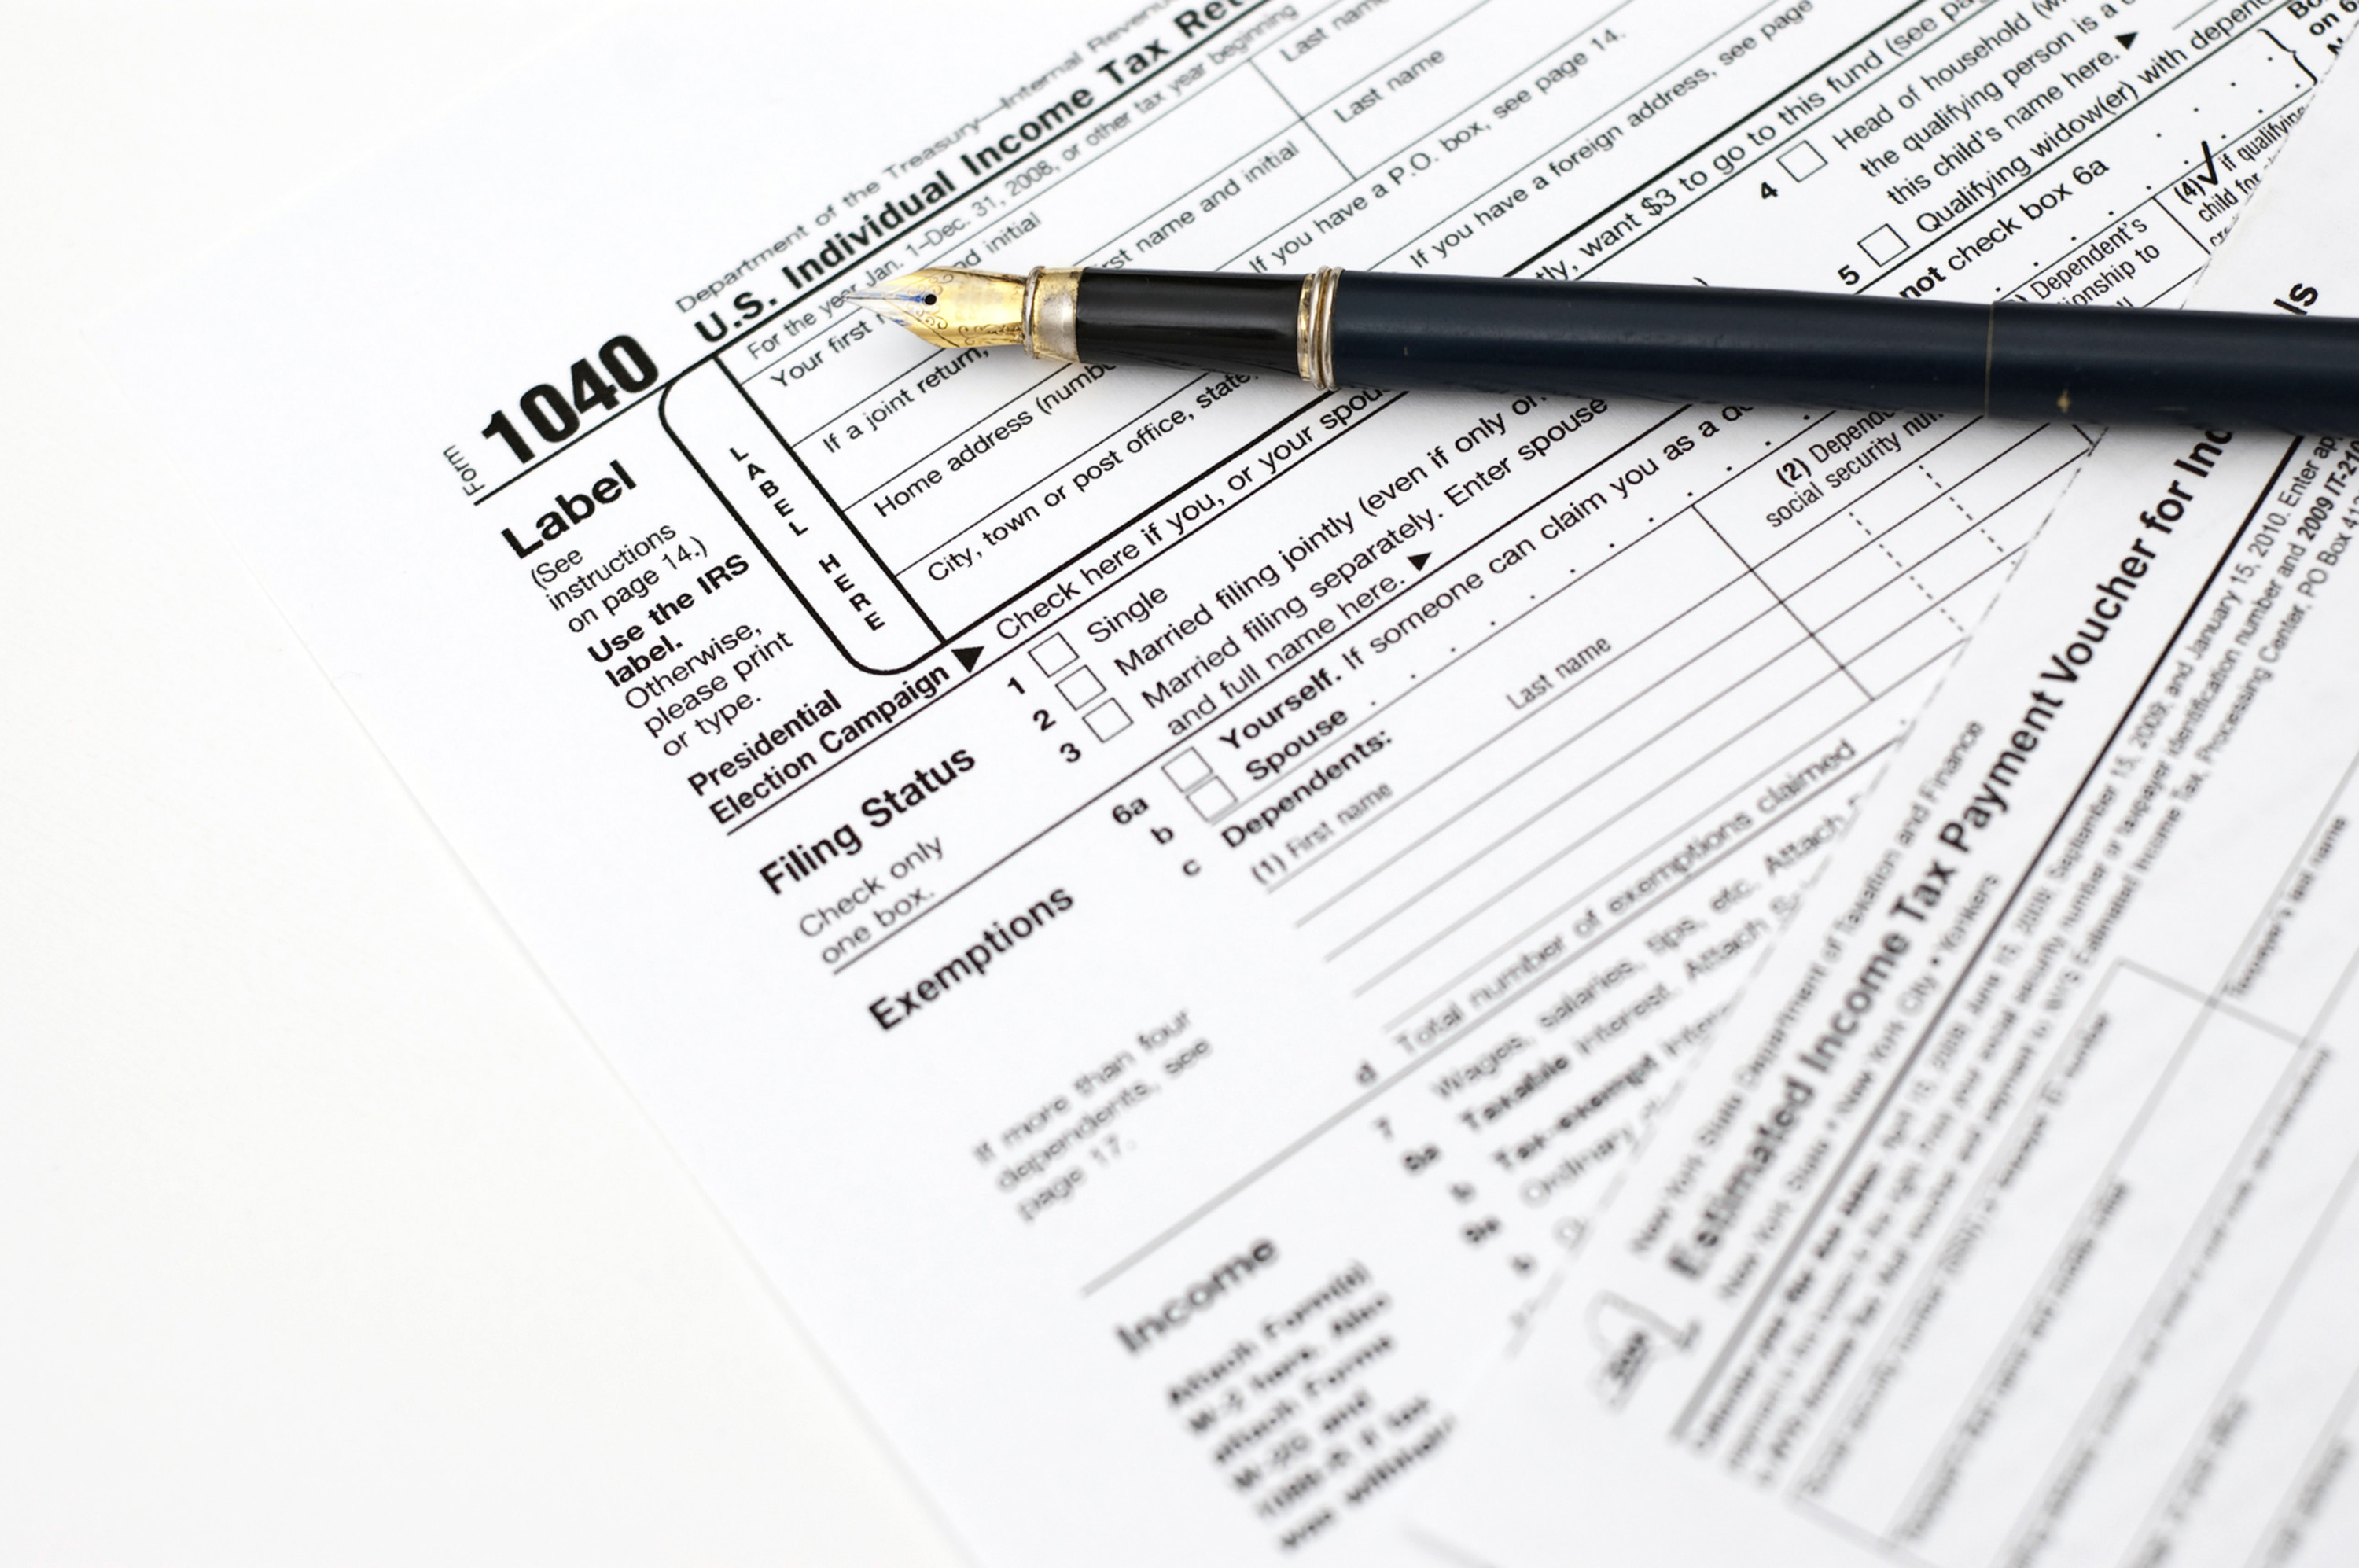 Virginia 529 tax forms - Eight Ways To Prepare For Big Tax Law Changes This Filing Season Nation Bangor Daily News Bdn Maine